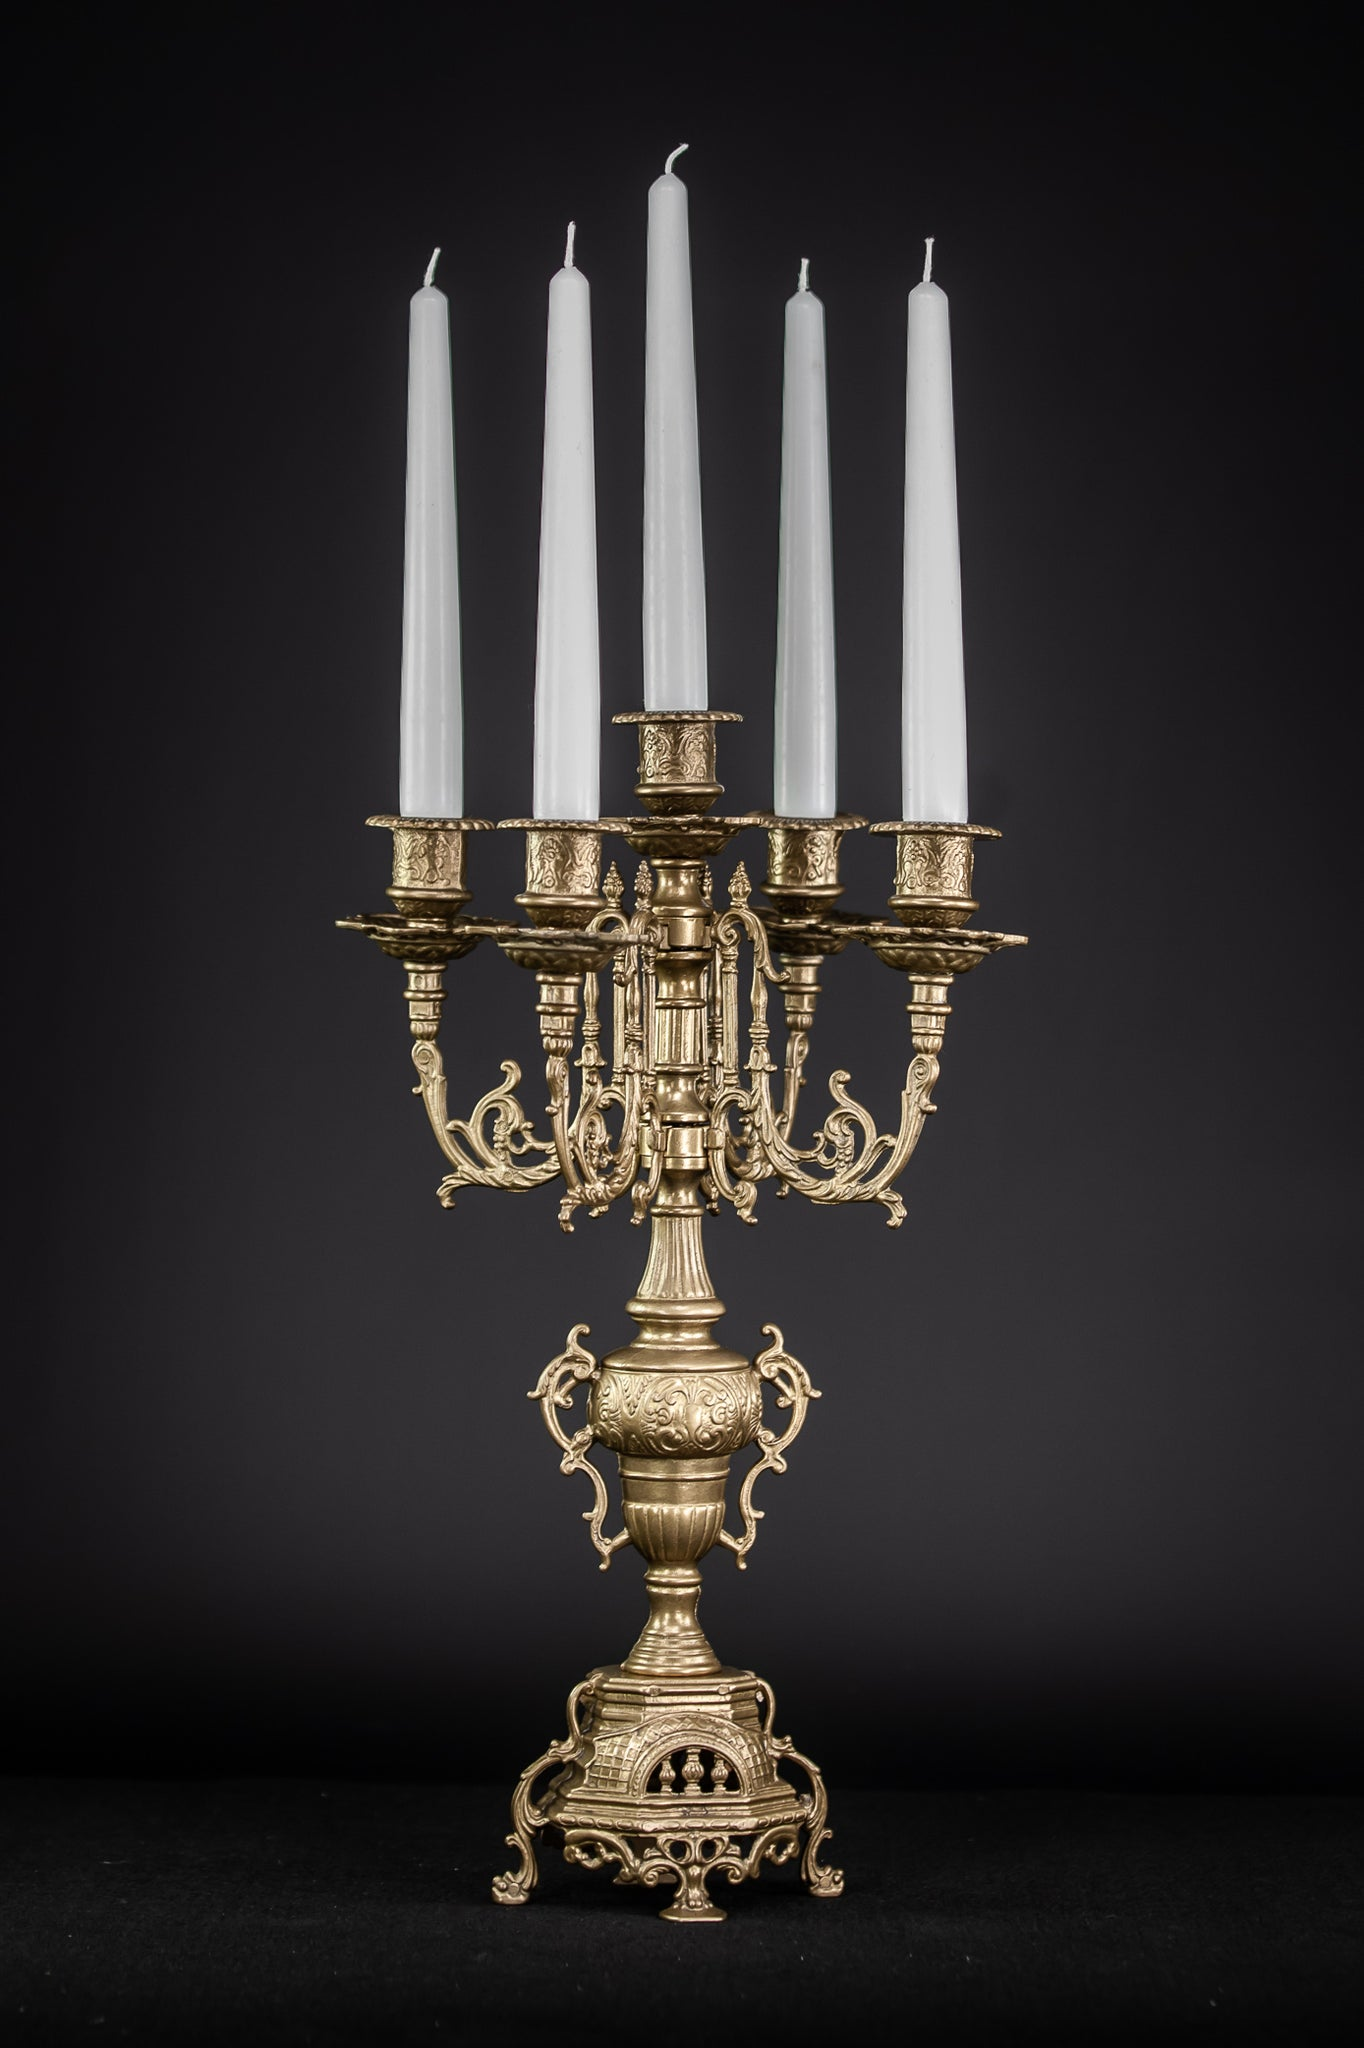 Candelabra Bronze Baroque 5 Arms Lights Tier 16.5""